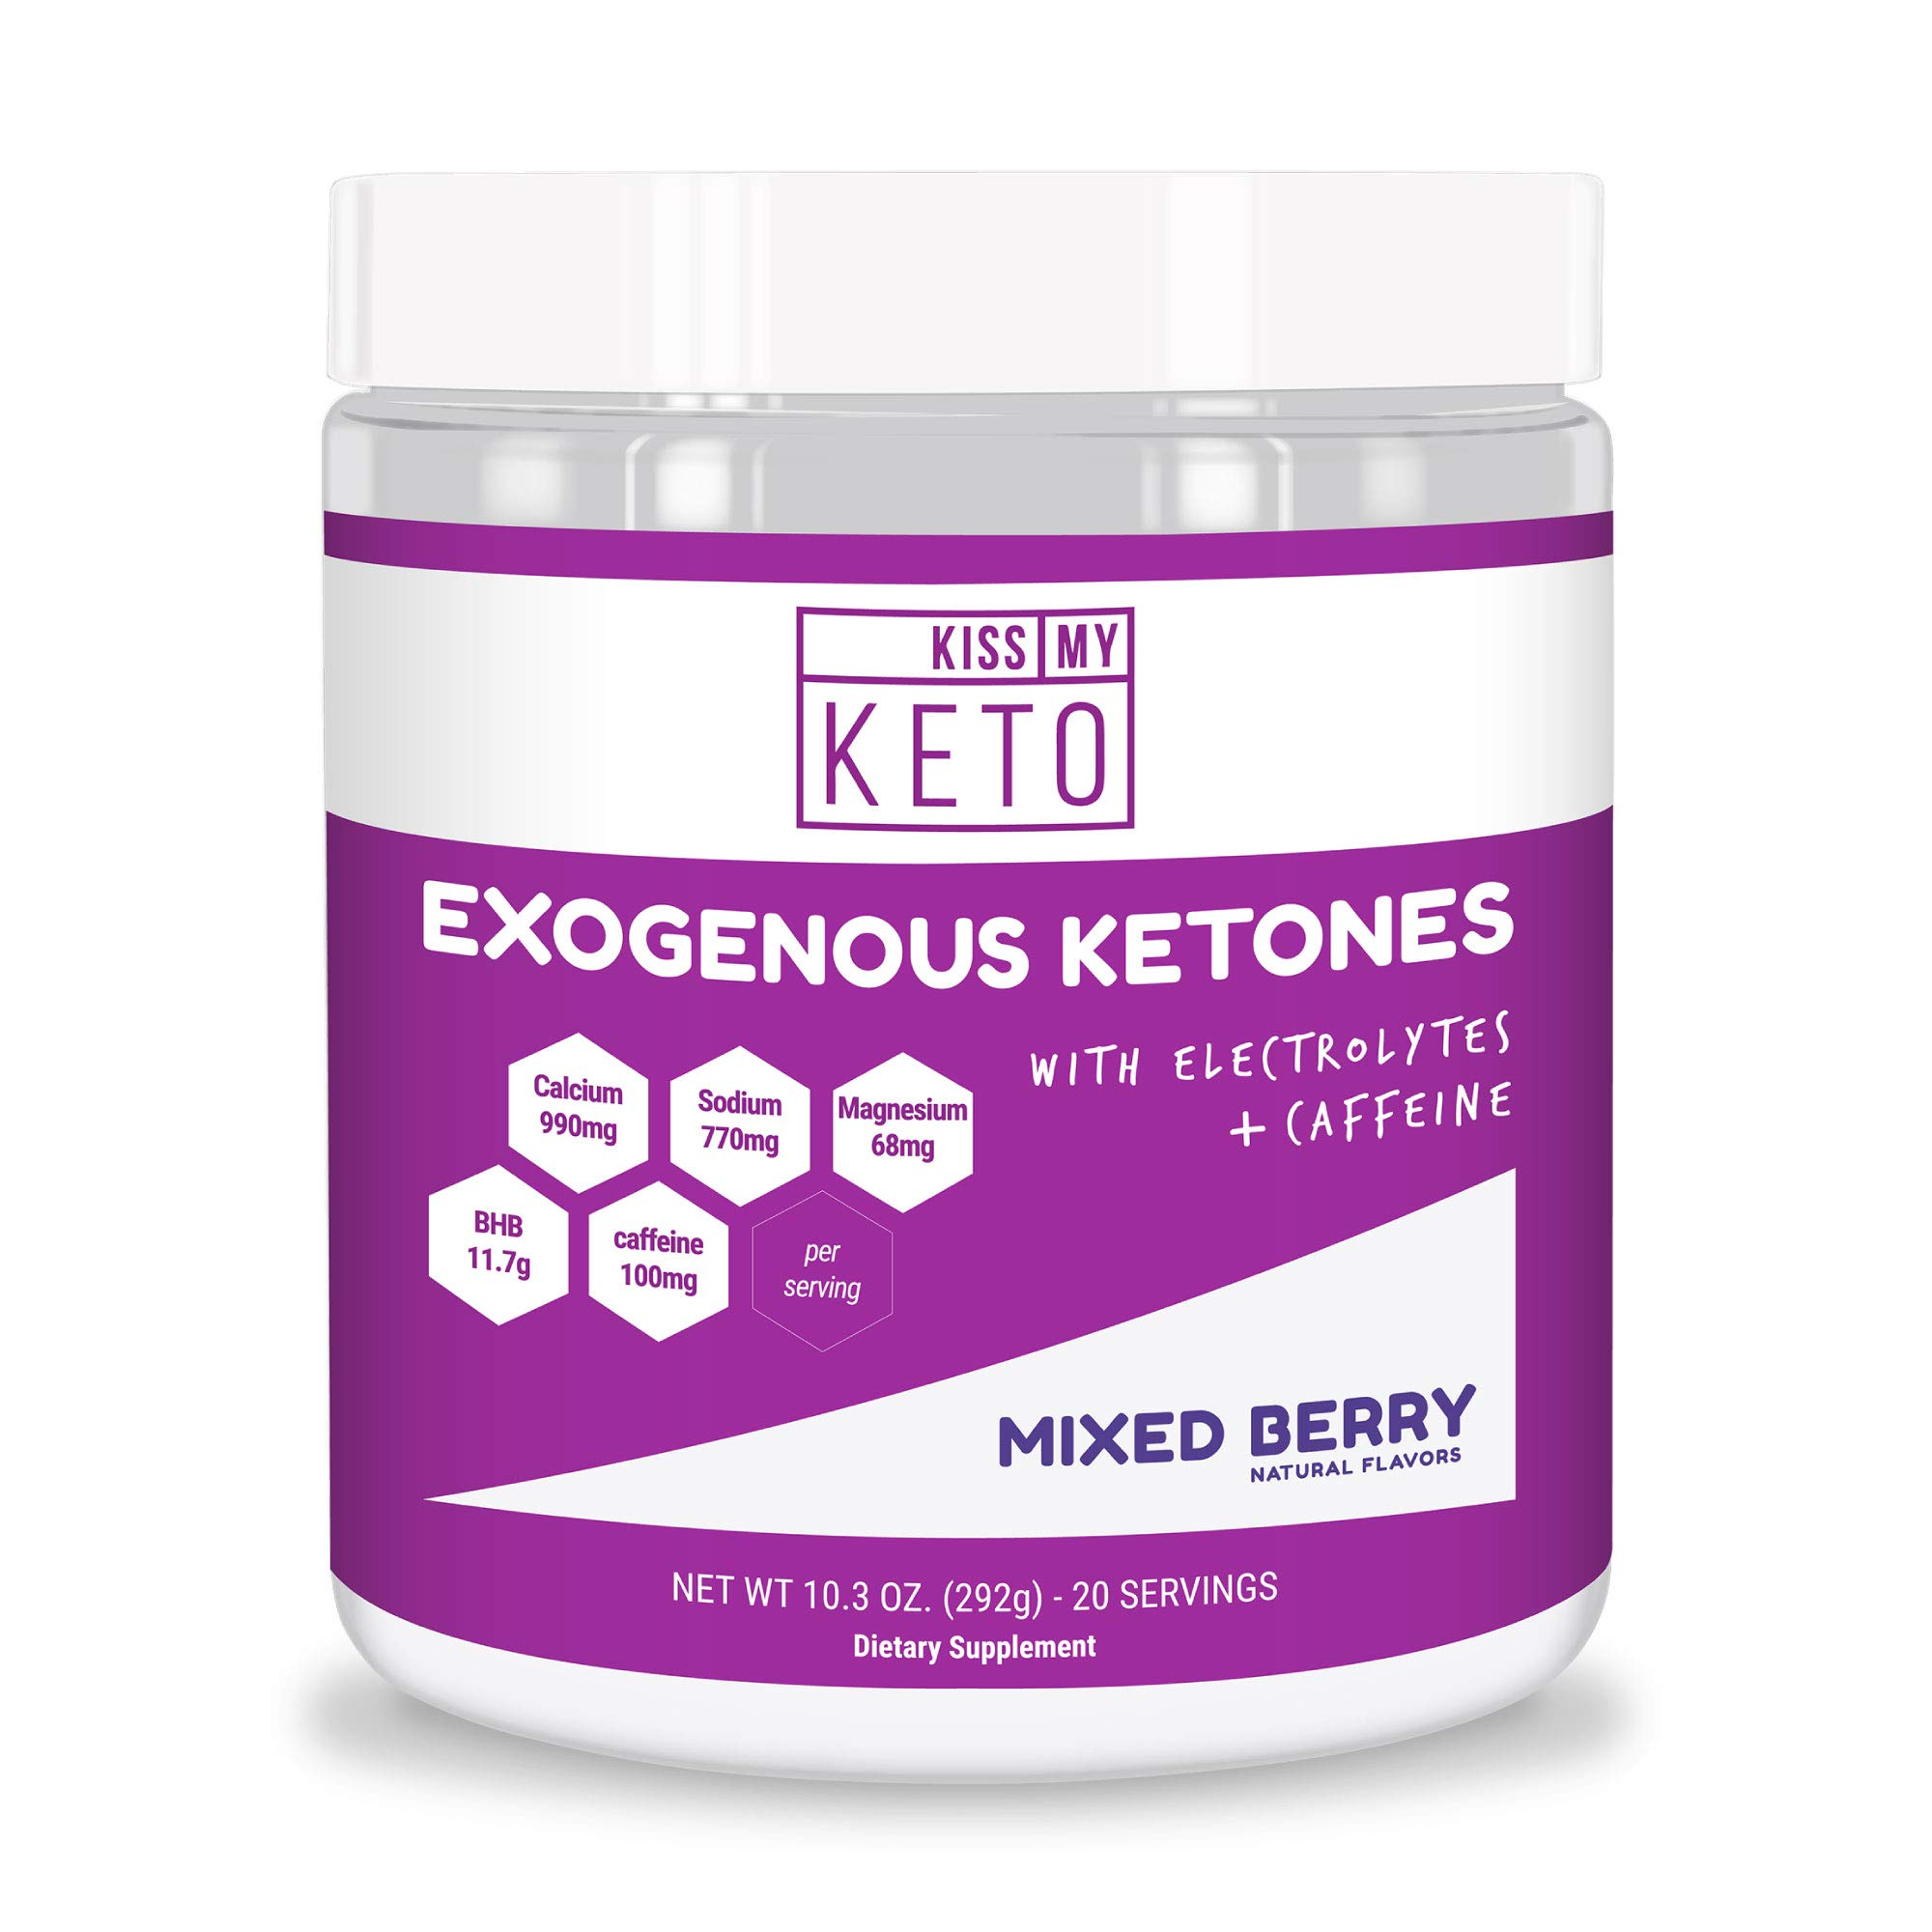 Kiss My Keto Pre Workout - Exogenous Ketones Caffeine and Electrolytes Powder Drink, 20 Servings Mixed Berry, GoBHB, Boost Energy and Metabolism, Get Into Ketosis by Kiss My Keto